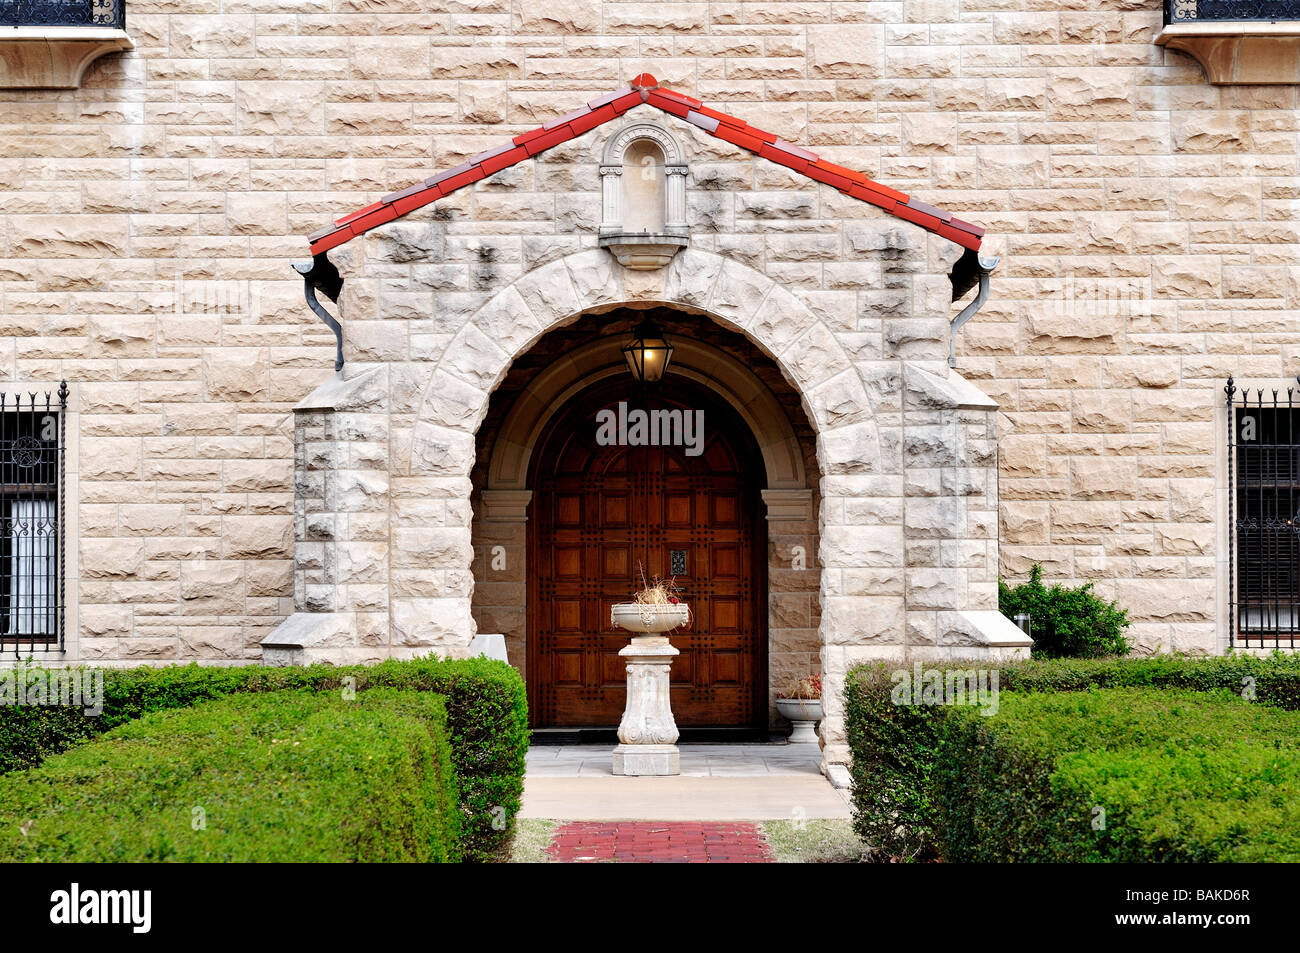 The entrance, west view, of the Marland Mansion in Ponca City, Oklahoma, USA. - Stock Image